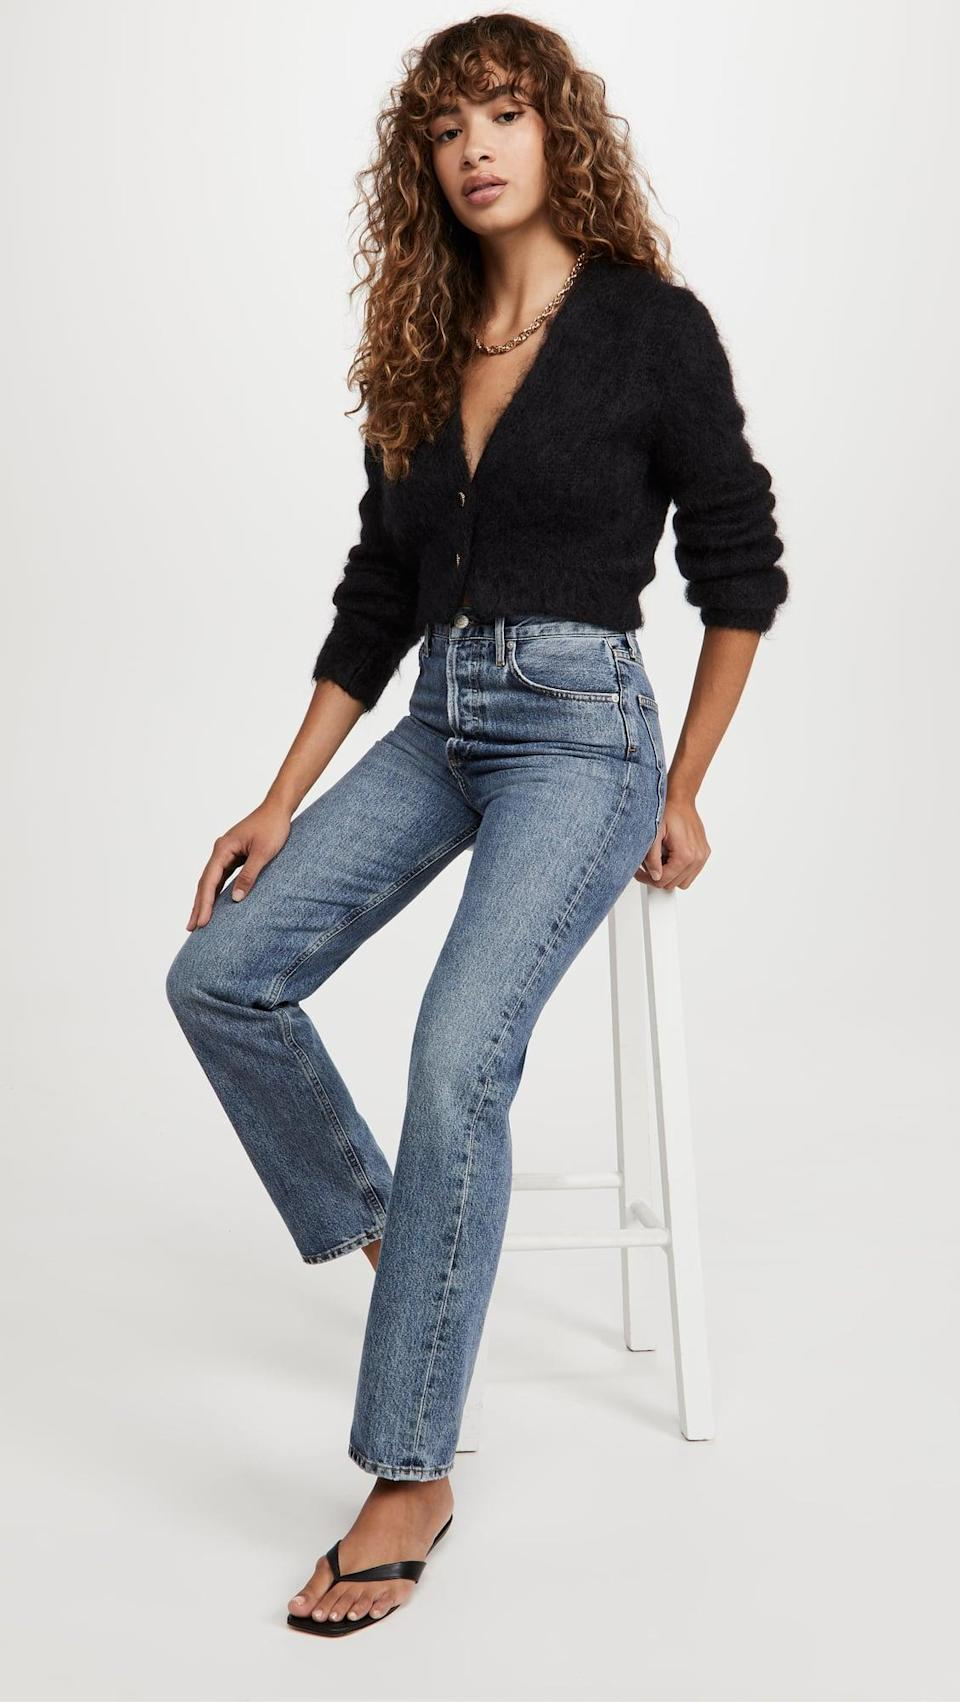 <p>If you love a fuzzy sweater, this <span>The Marc Jacobs Hairy Cropped Mohair Cardigan</span> ($375) is for you. It looks great with high-waisted jeans or a black skirt.</p>